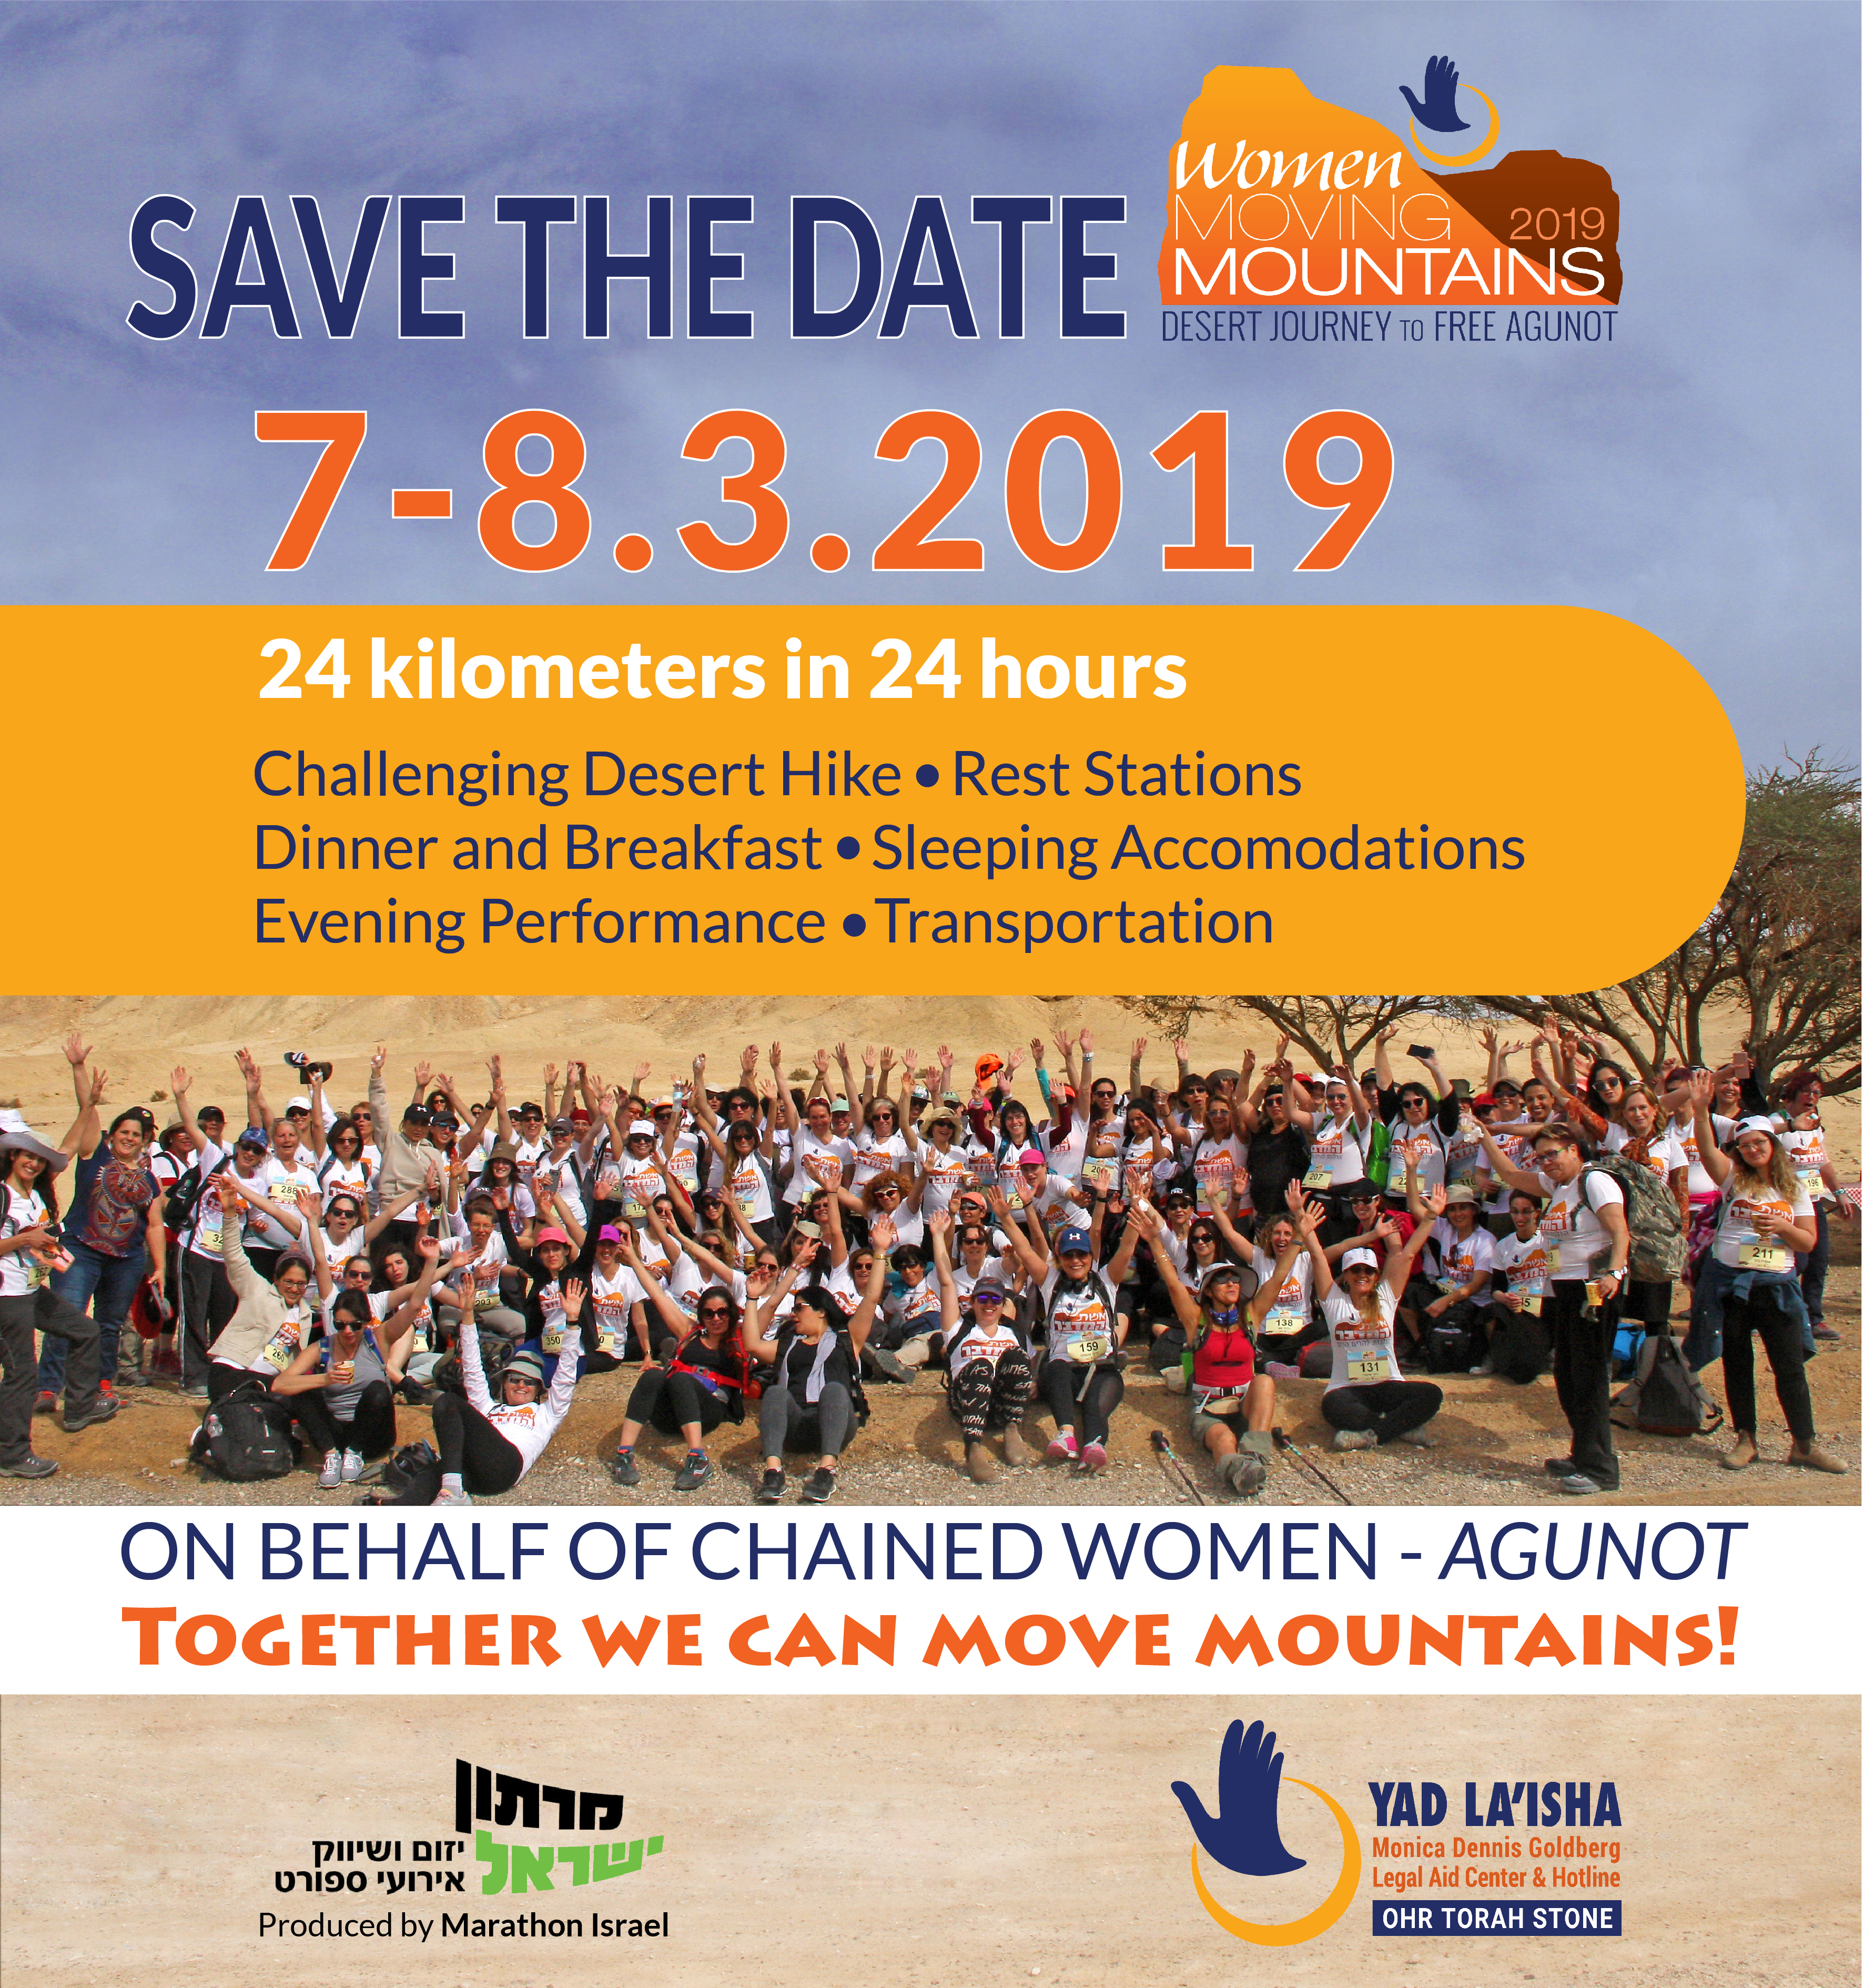 SAVE THE DATE Women Moving Mountains 2019